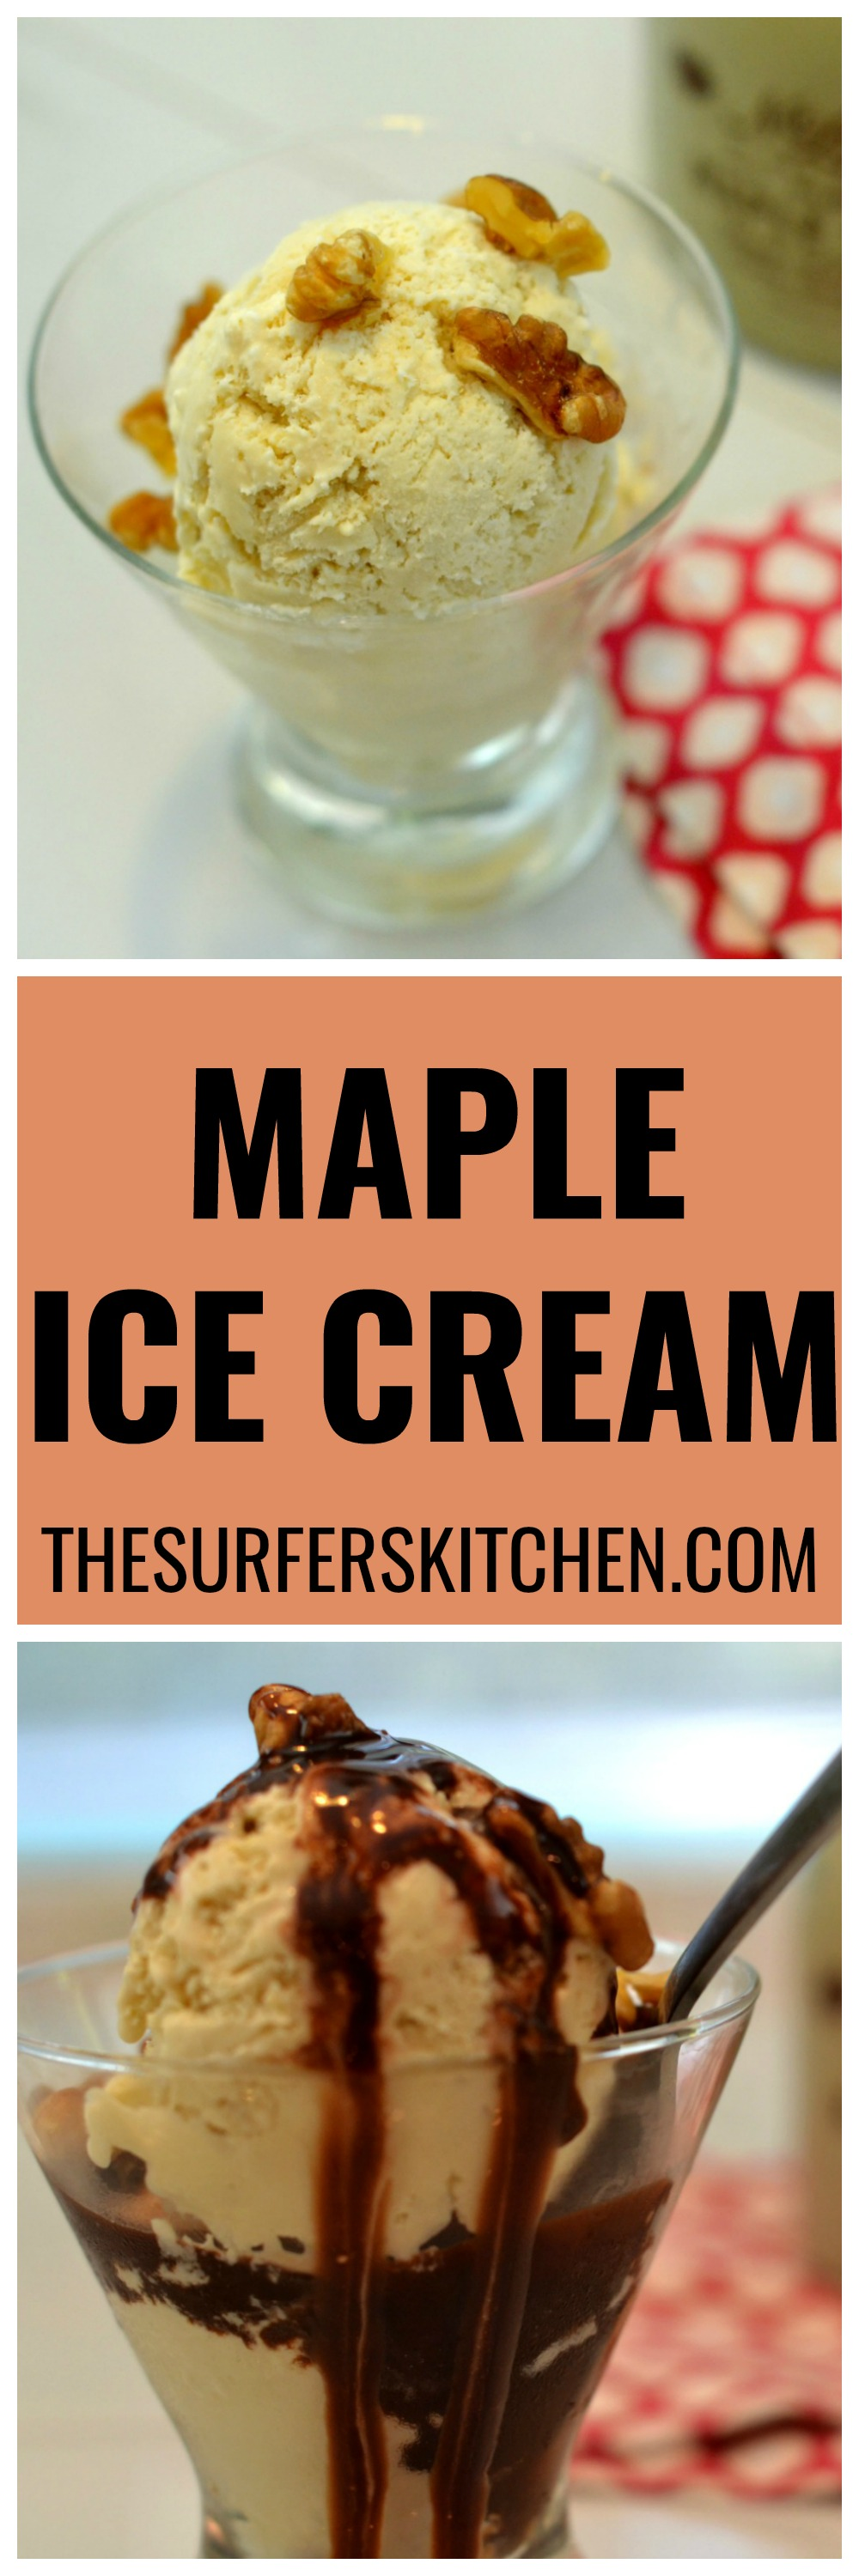 Maple Ice Cream made with heavy cream, milk, maple syrup and salt. Such a simple recipe for such a flavorful dessert. | www.thesurferskitchen.com